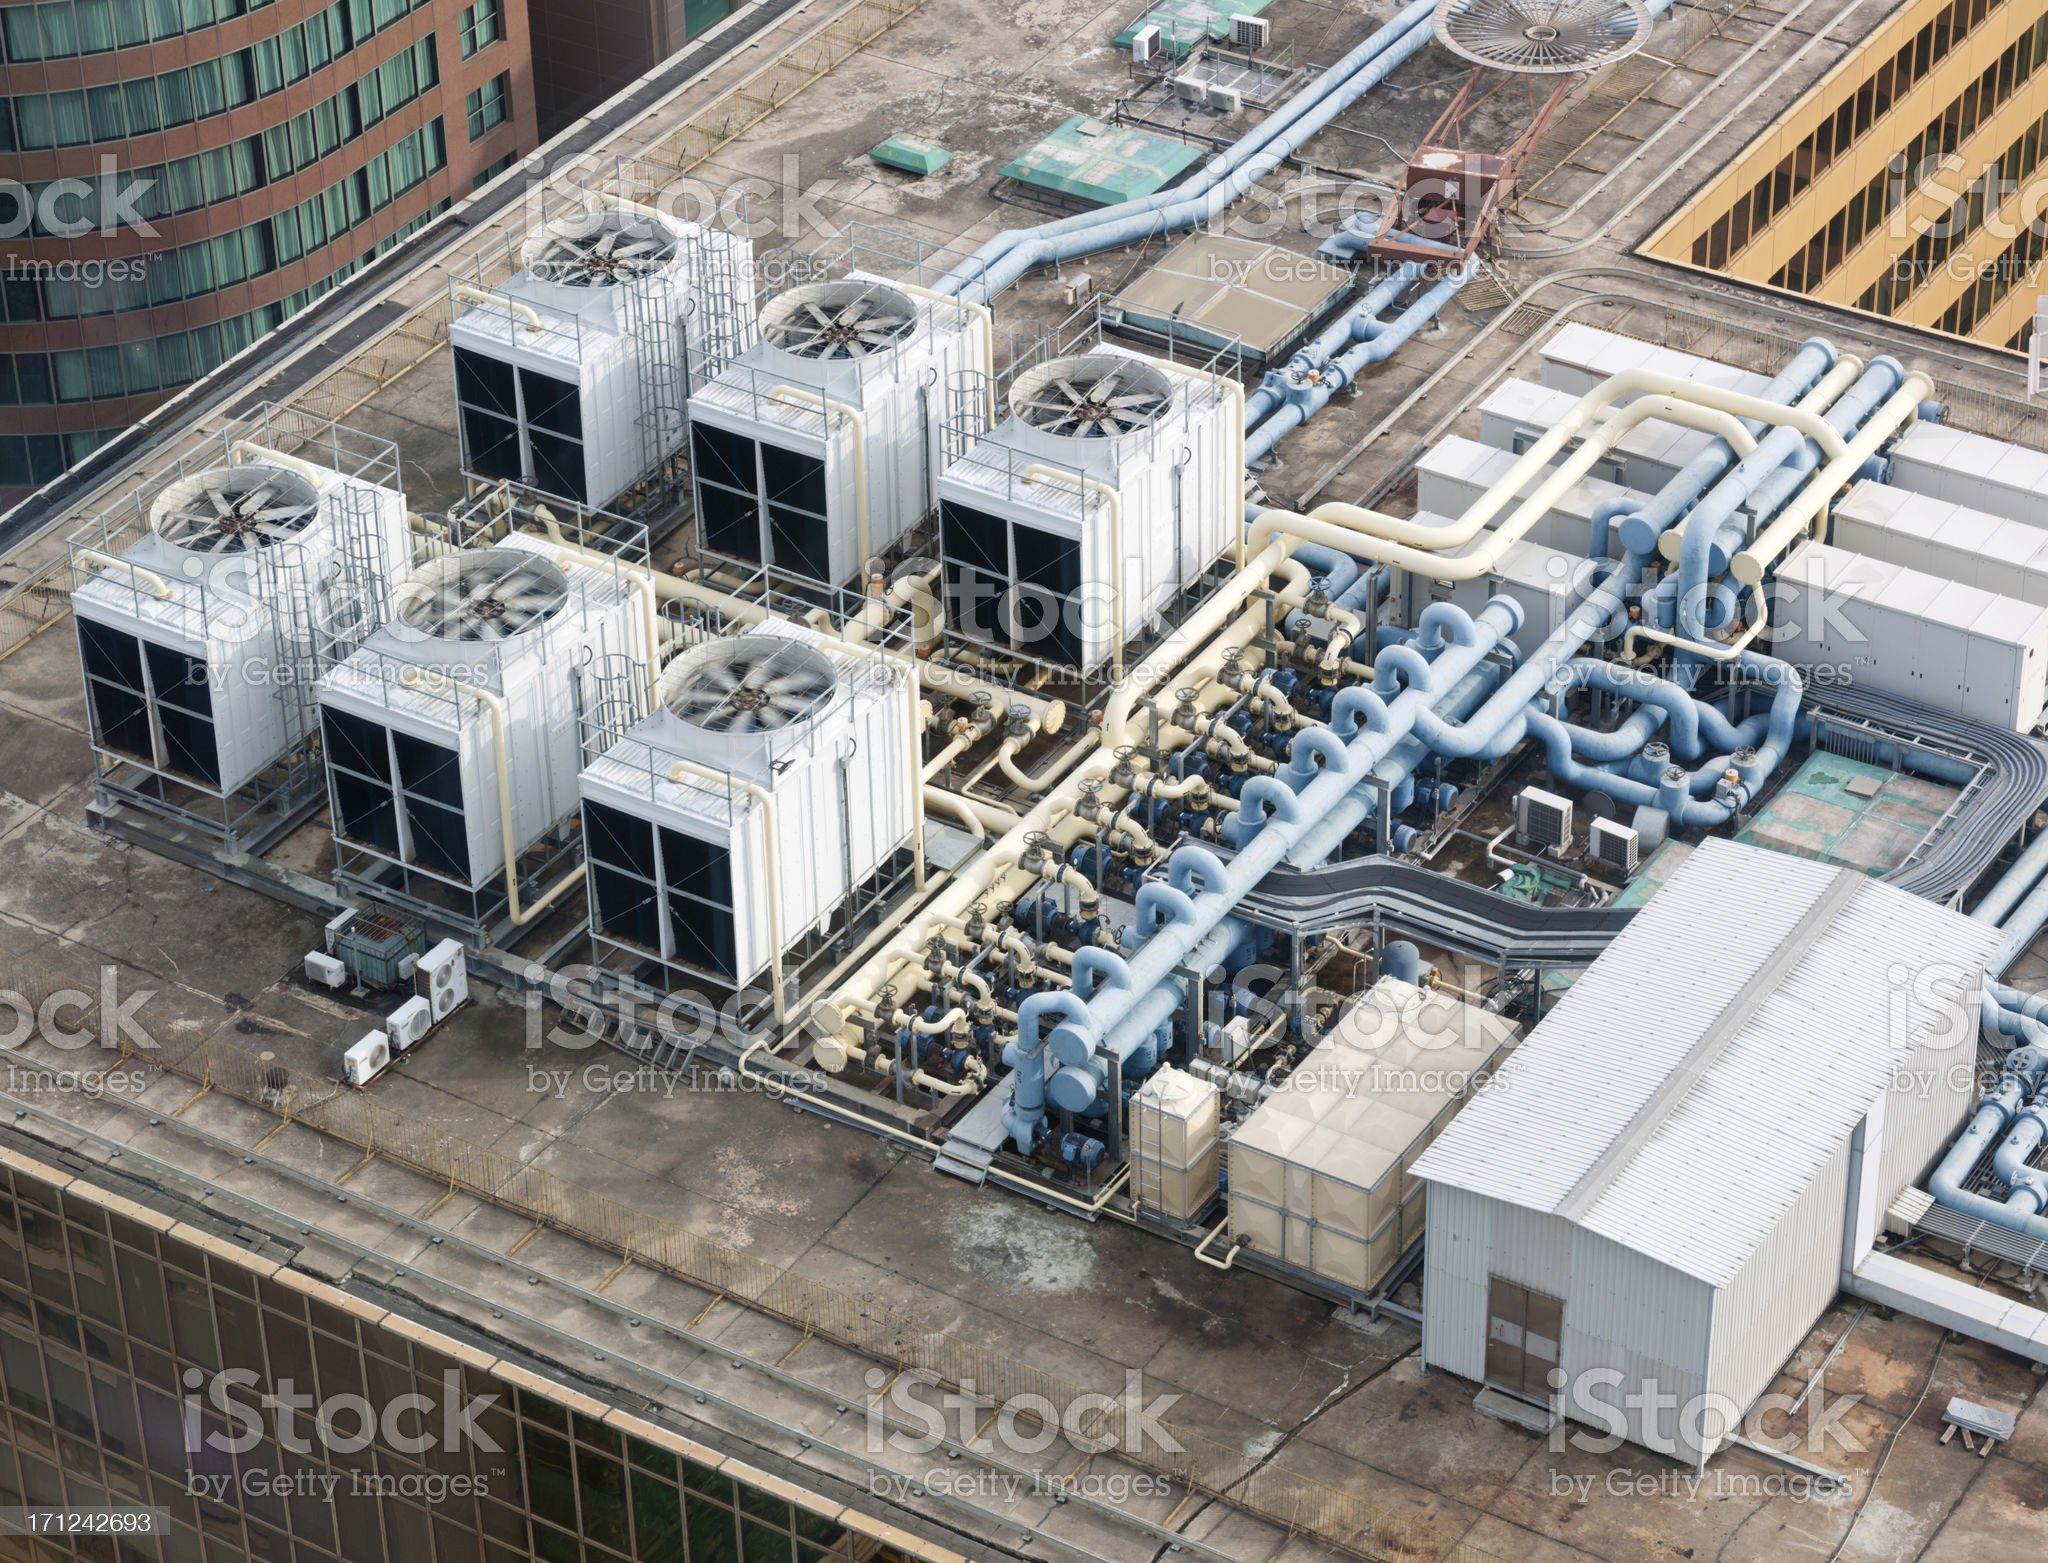 Rooftop Air System, Skyscraper, Hong Kong (XXXL) royalty-free stock photo